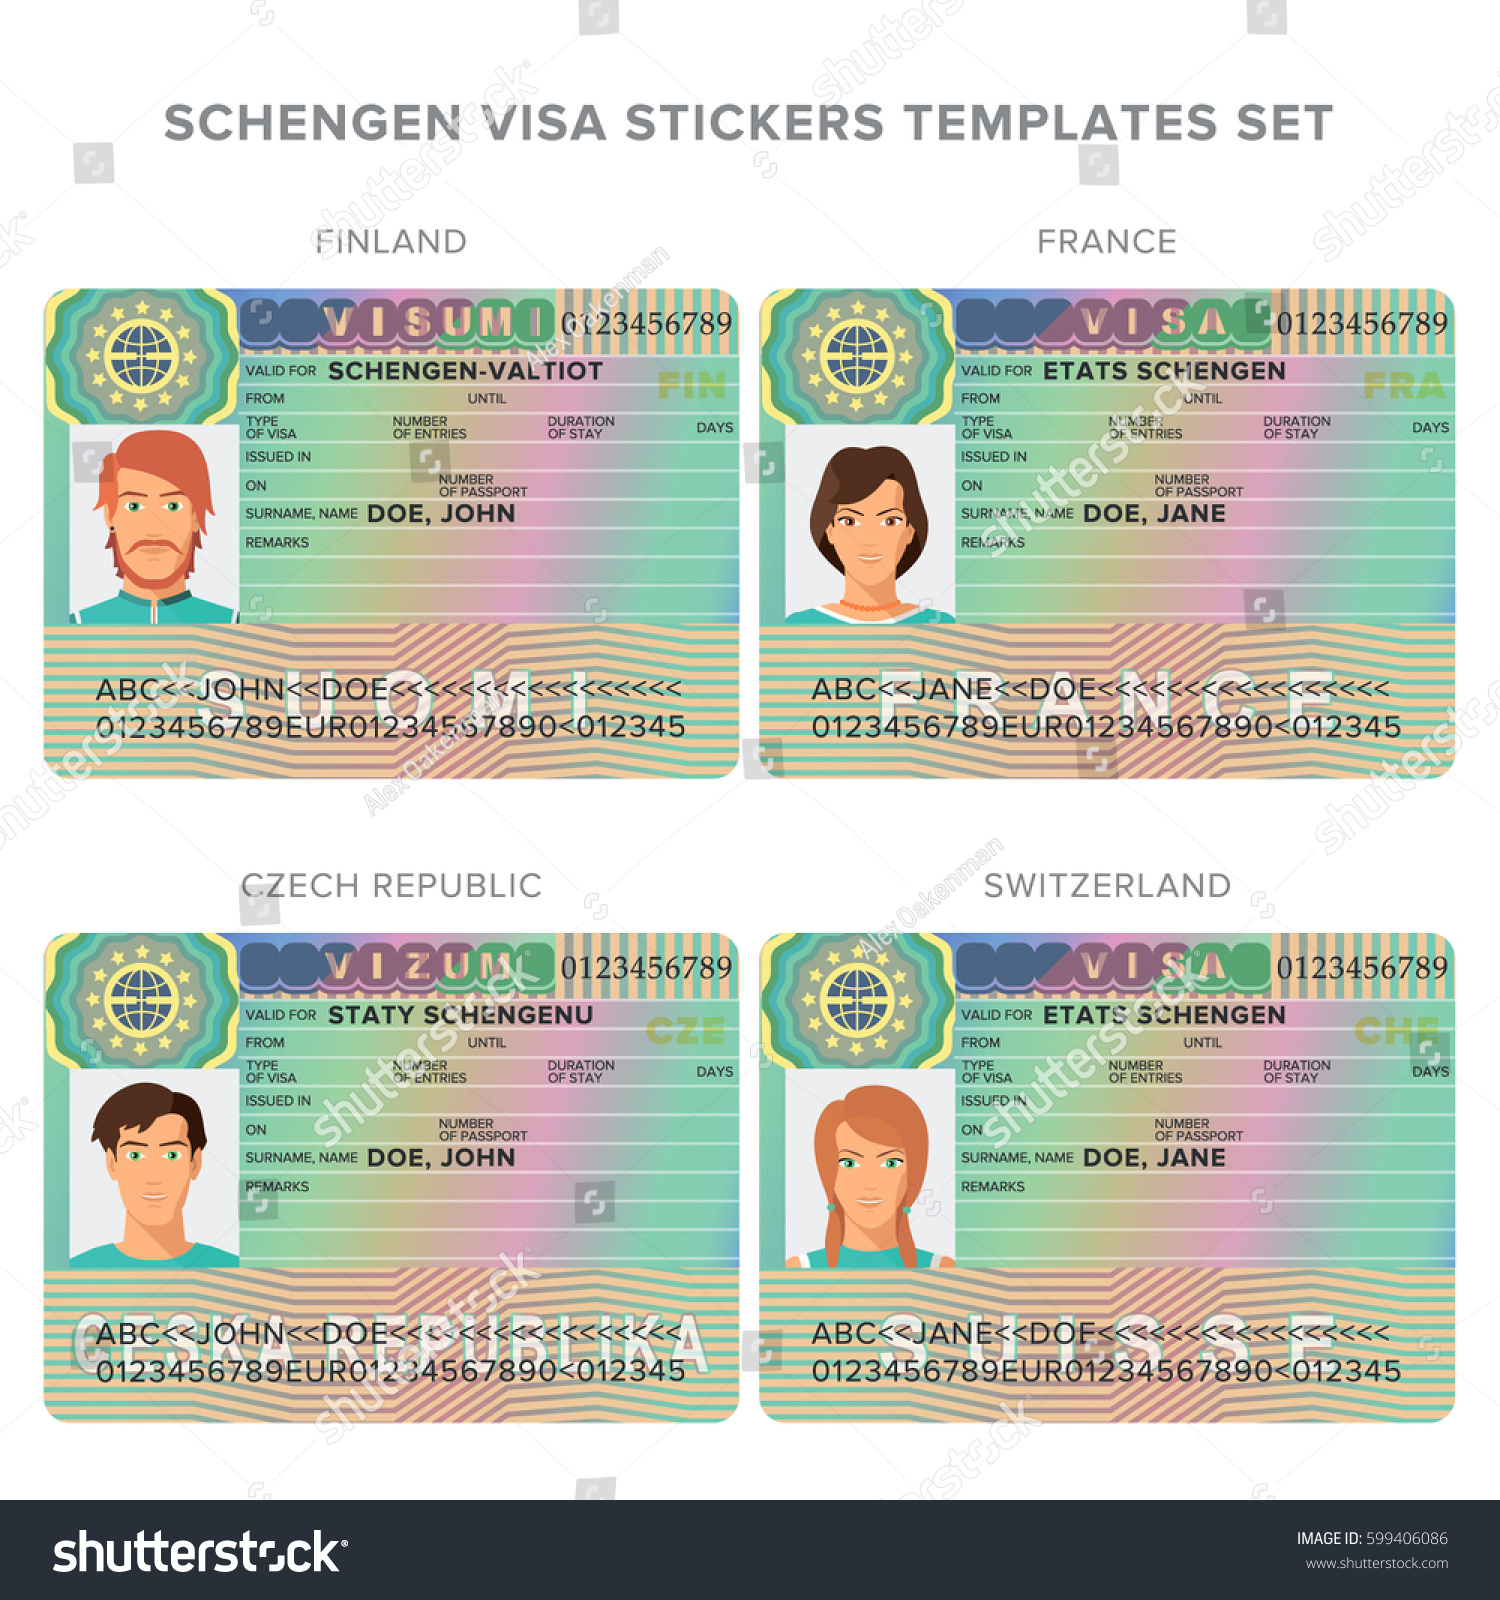 Schengen Visa Passport Sticker Templates For Finland, France, Czech  Republic, Switzerland Set.